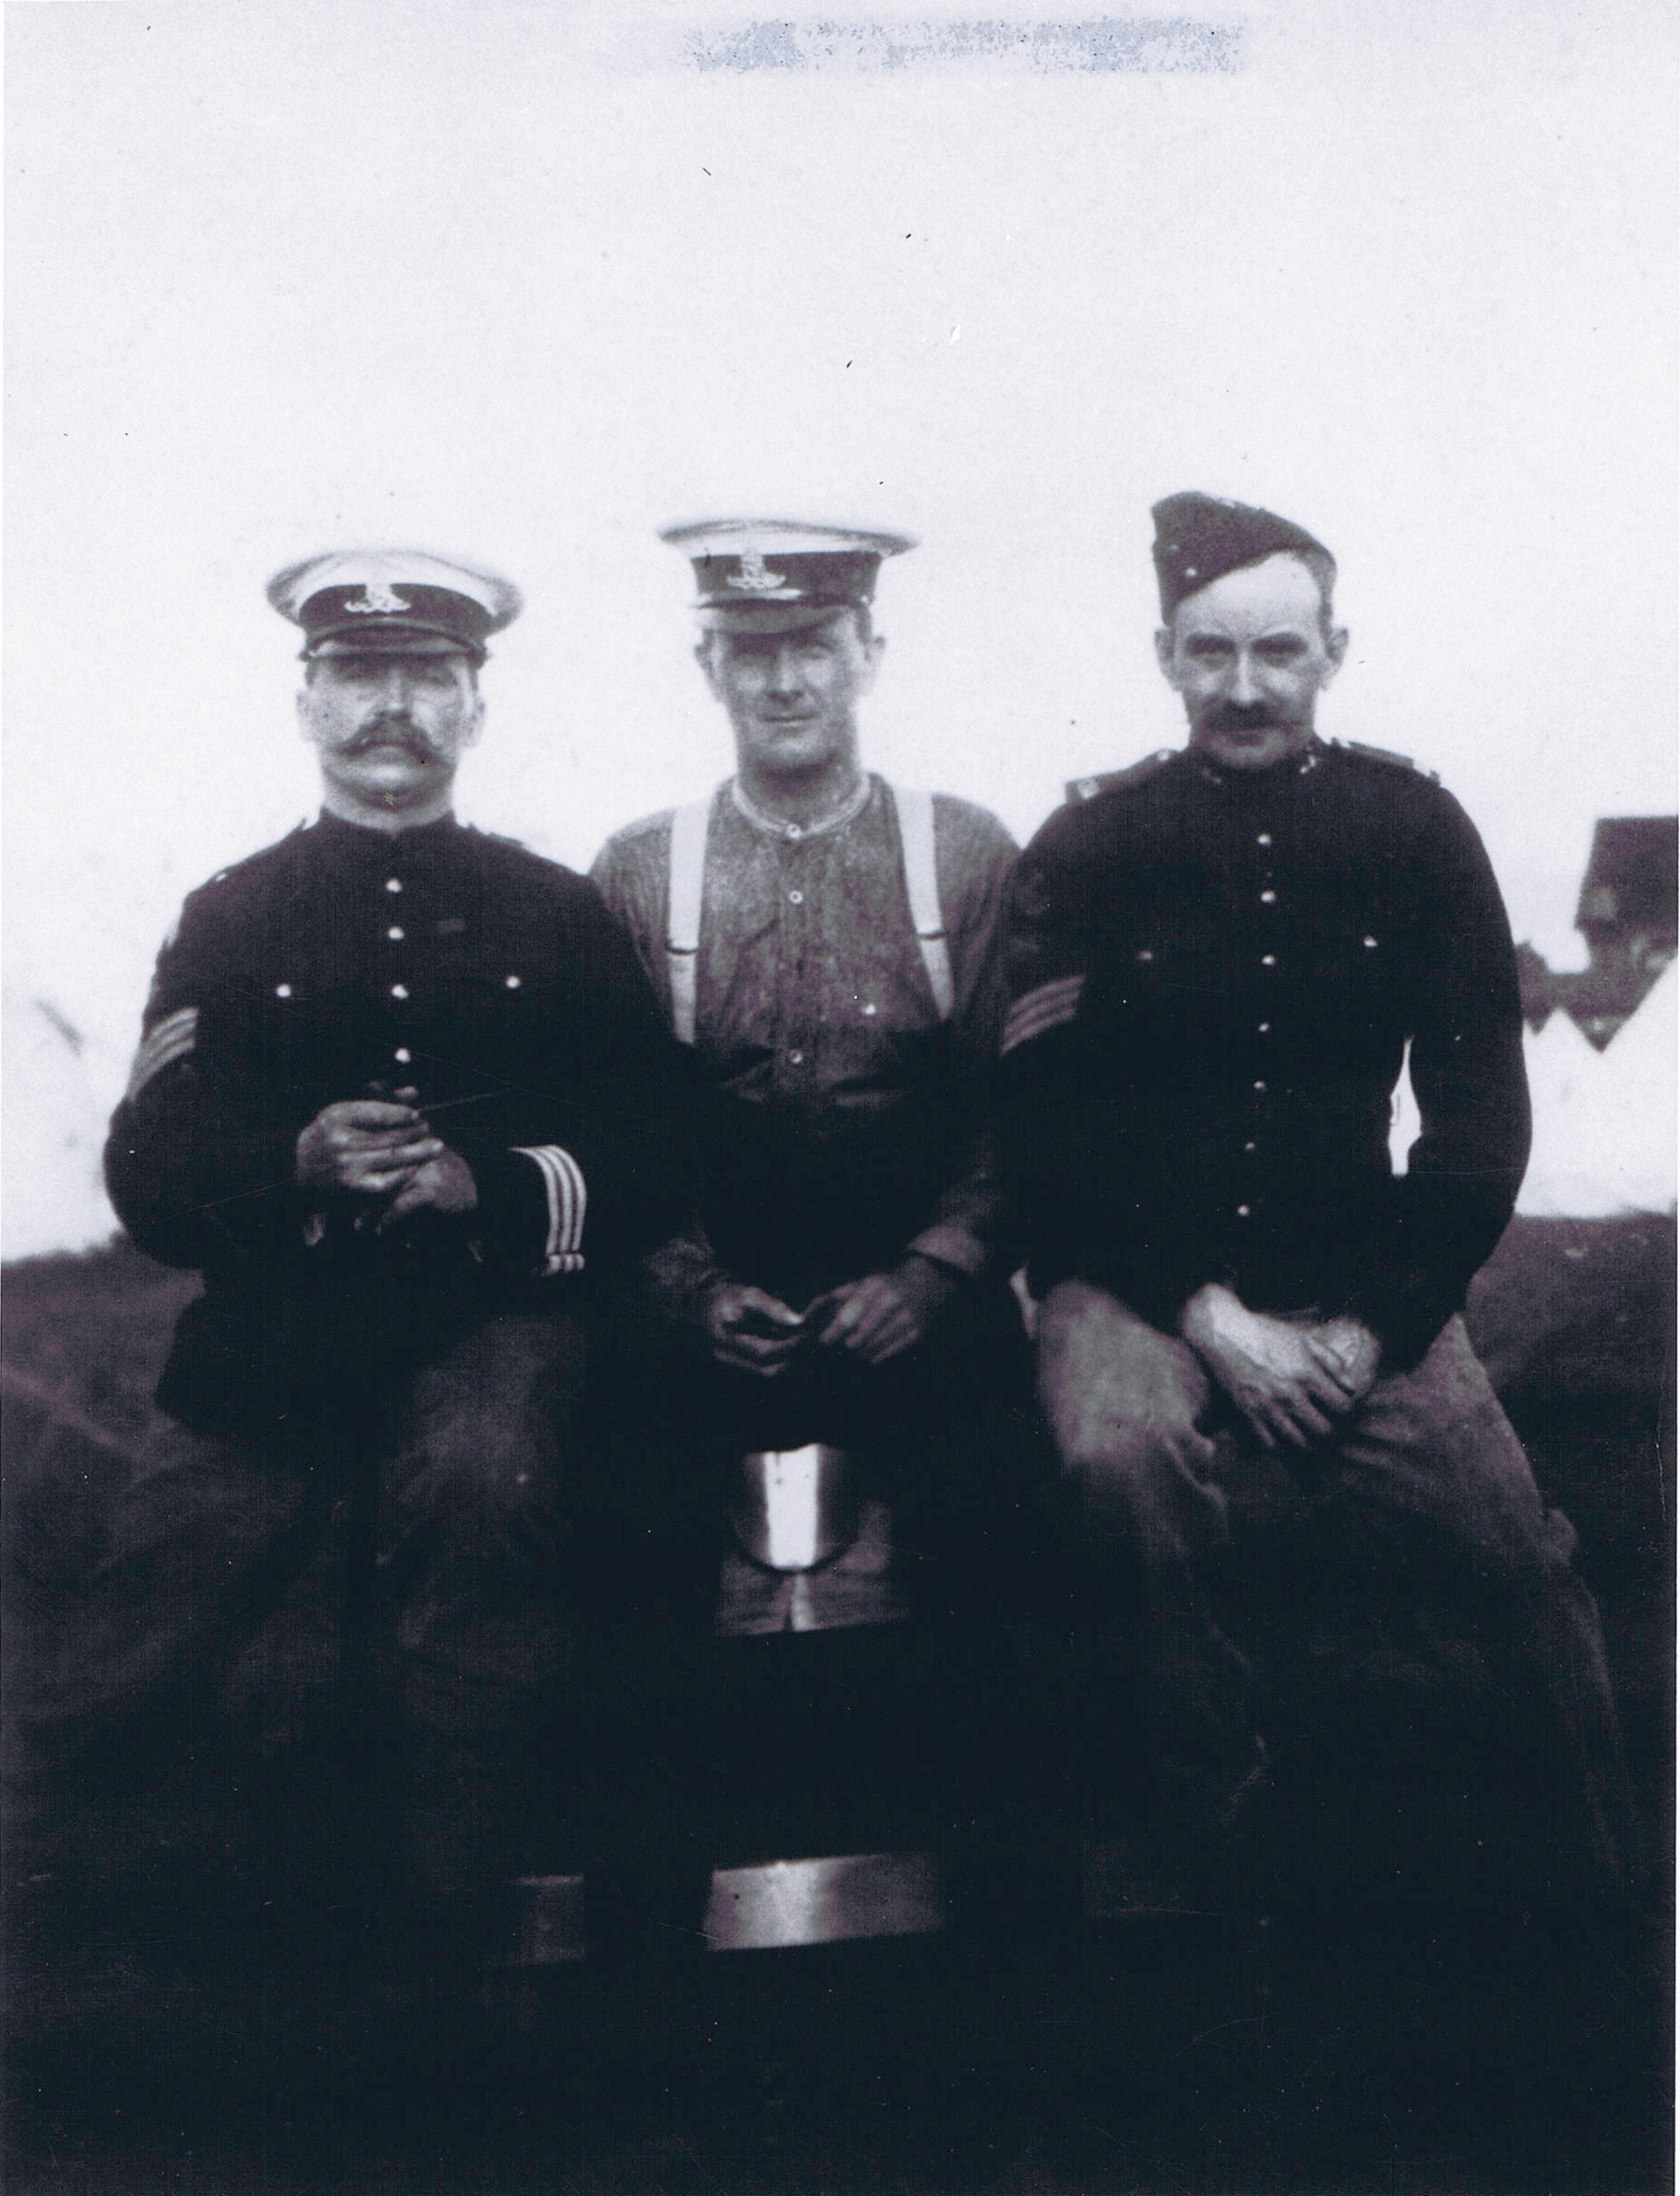 Gunners of the 5th Regiment